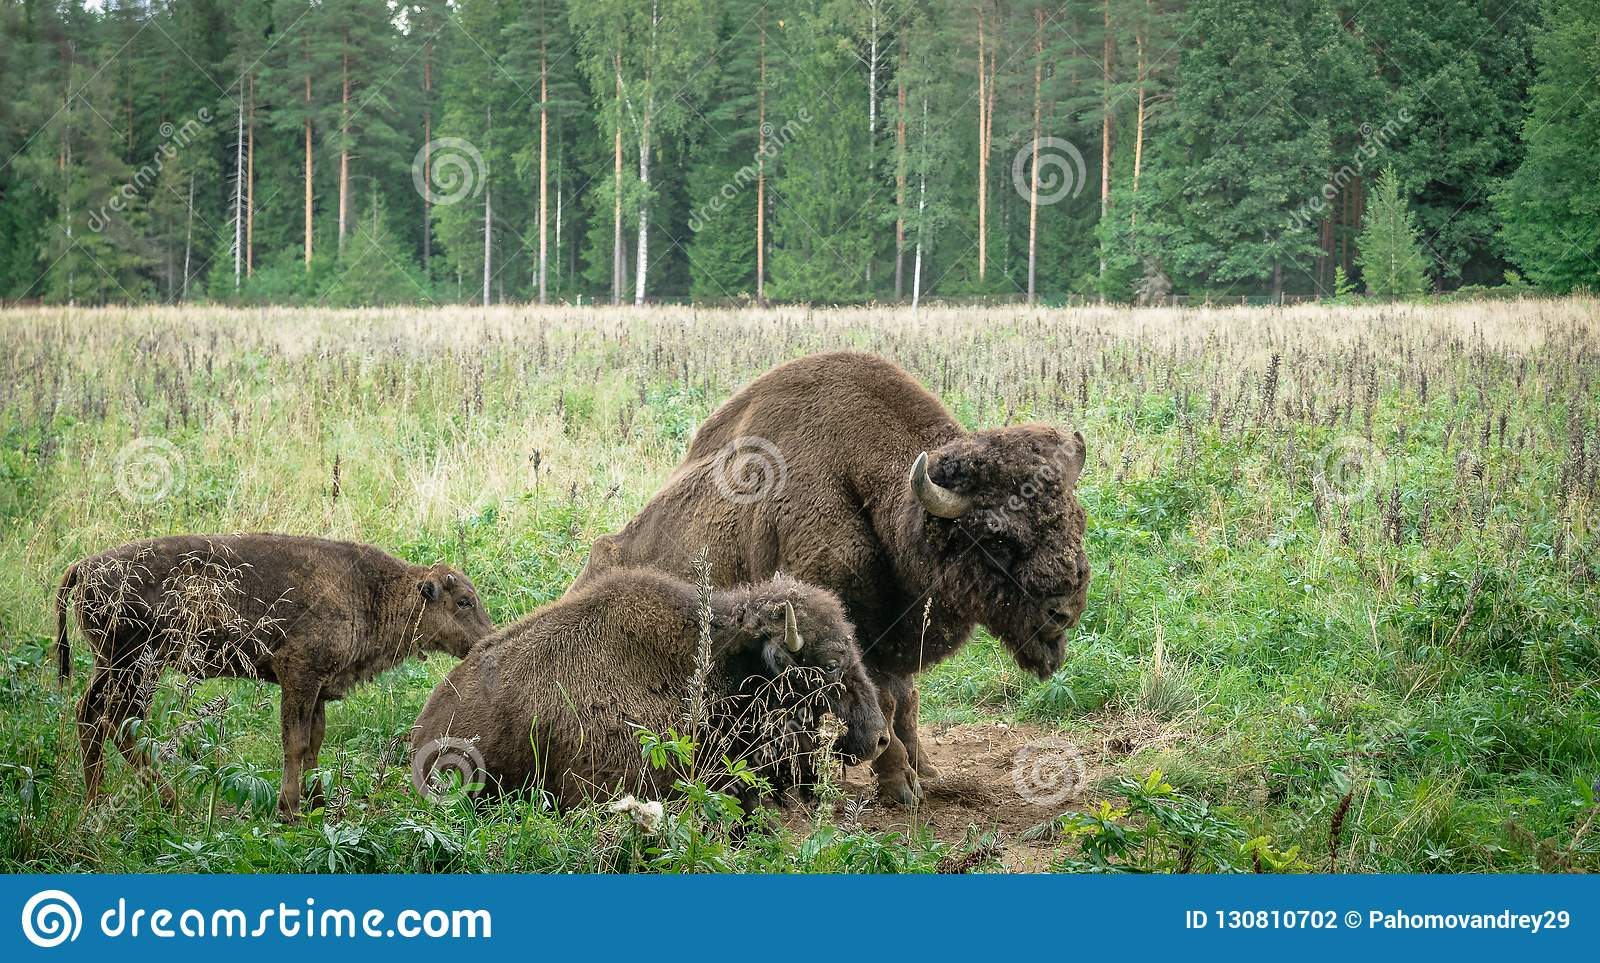 Large male and cub of the American bison in the national park